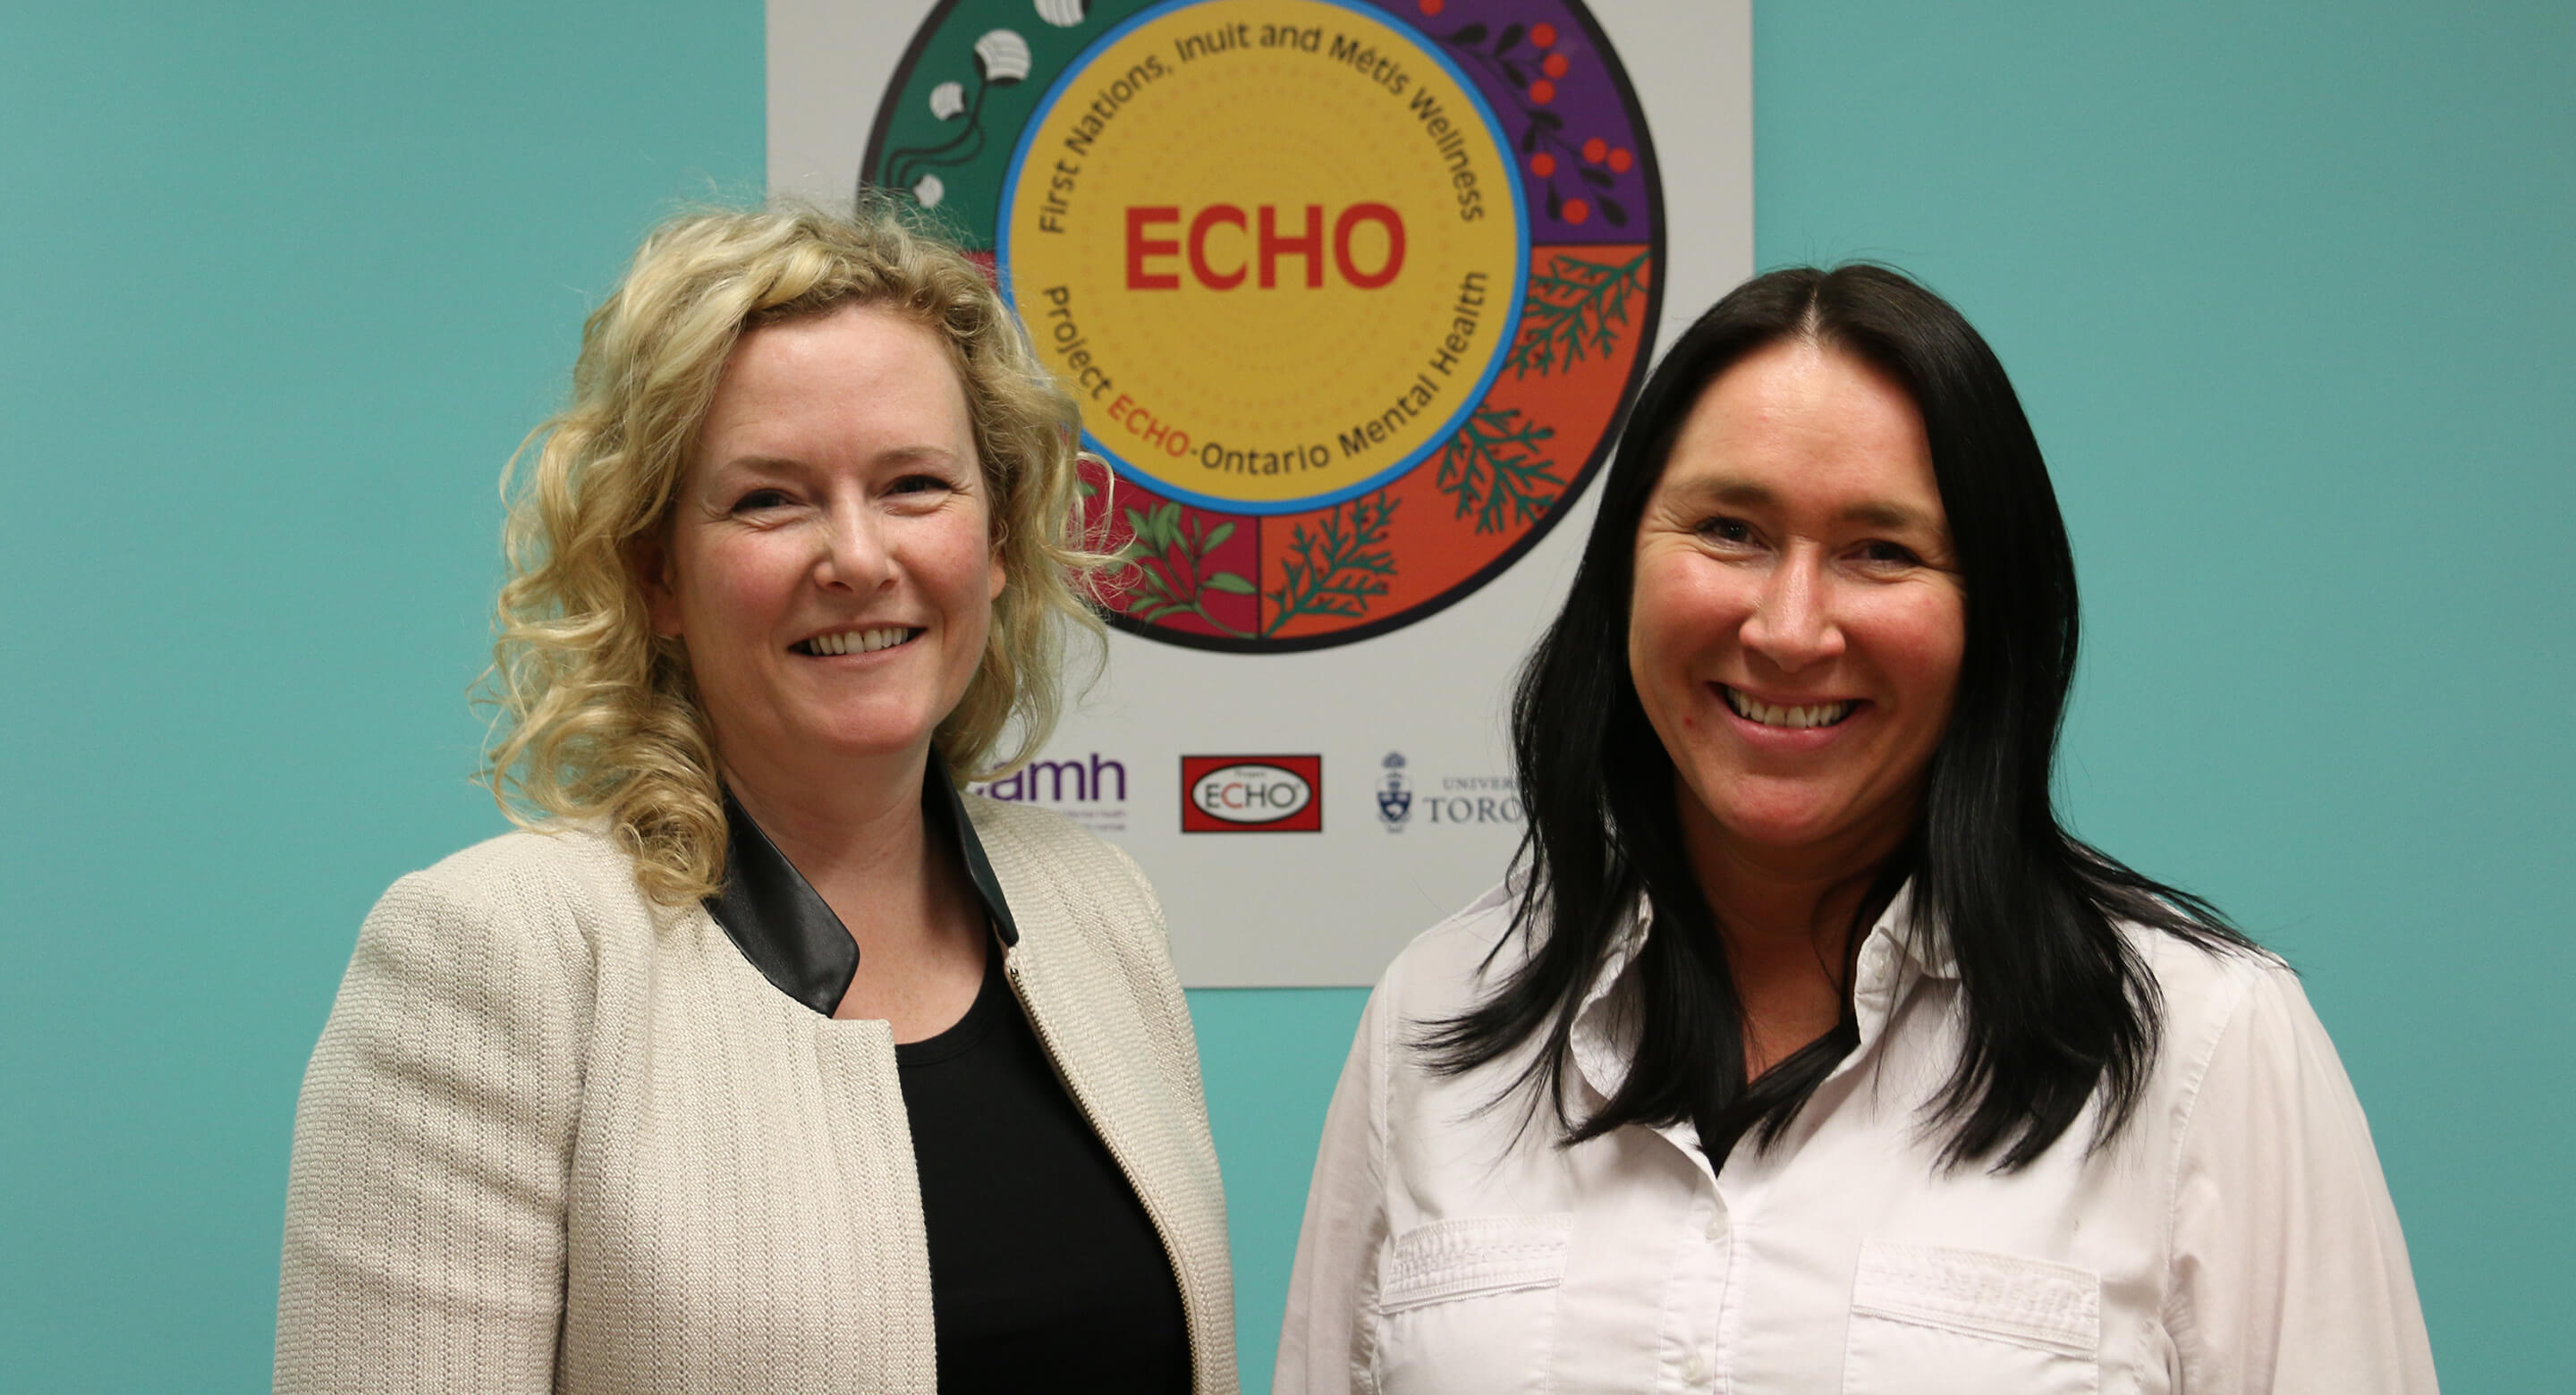 Dr. Allison Crawford and Dr. Renee Linklater co-lead the ECHO Ontario First Nations, Inuit and Métis Wellness